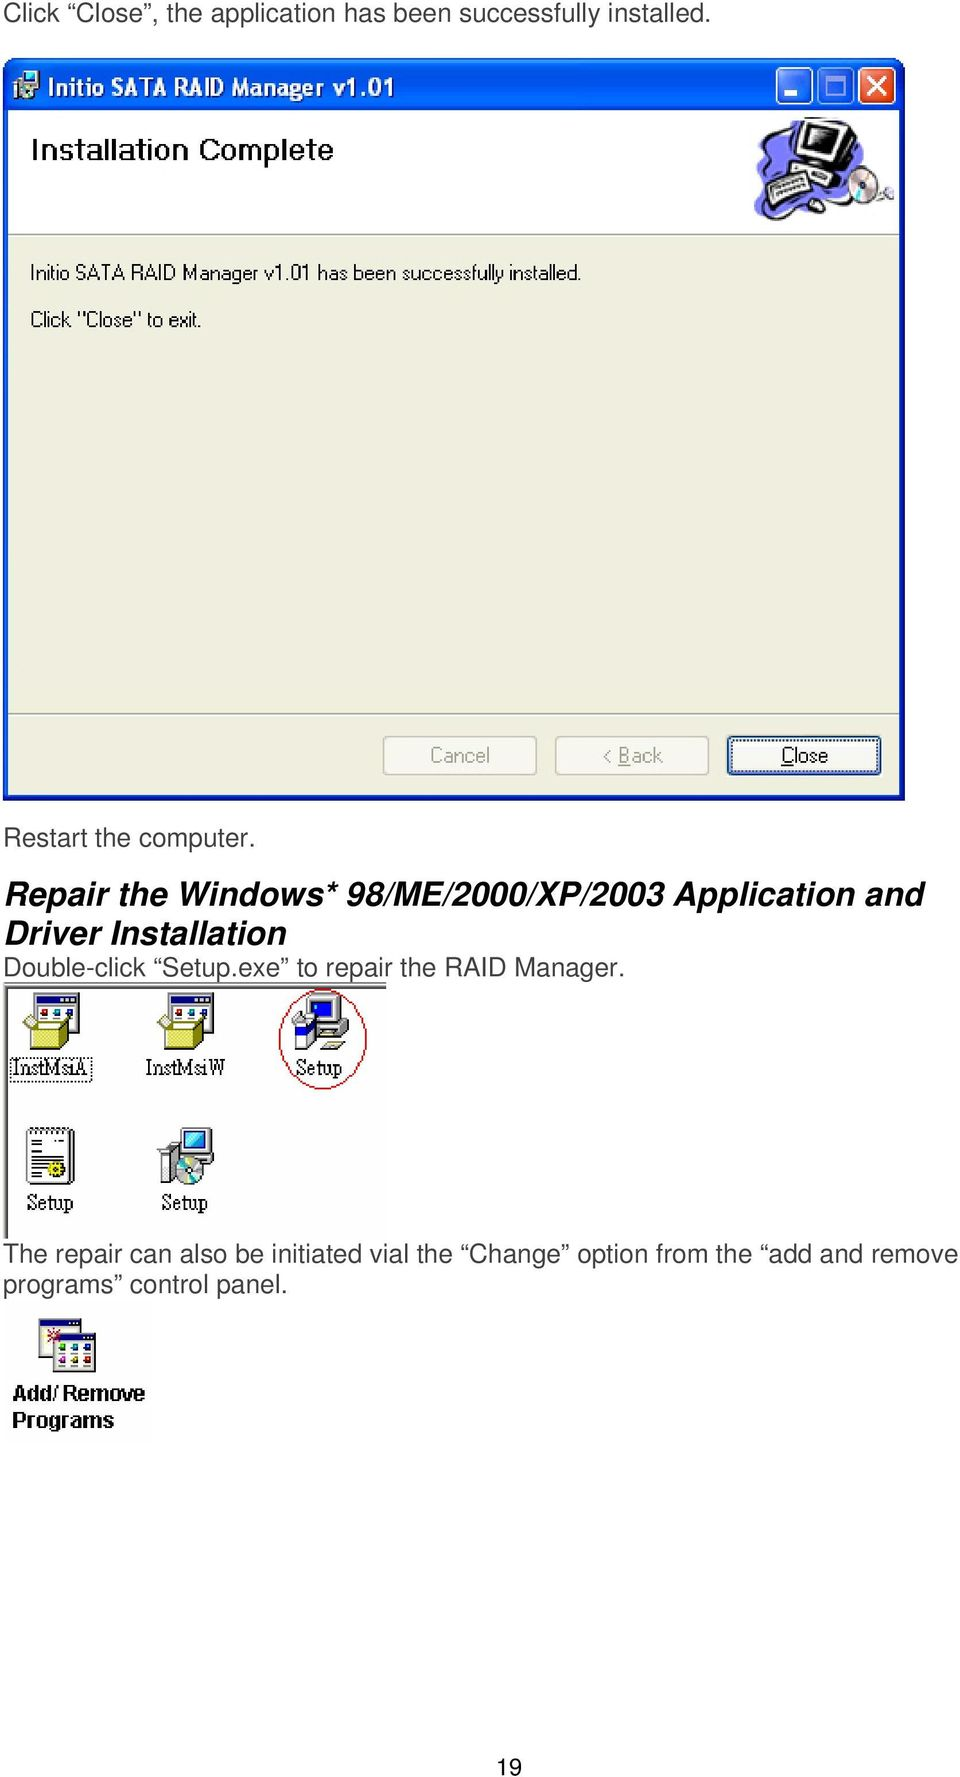 Repair the Windows* 98/ME/2000/XP/2003 Application and Driver Installation